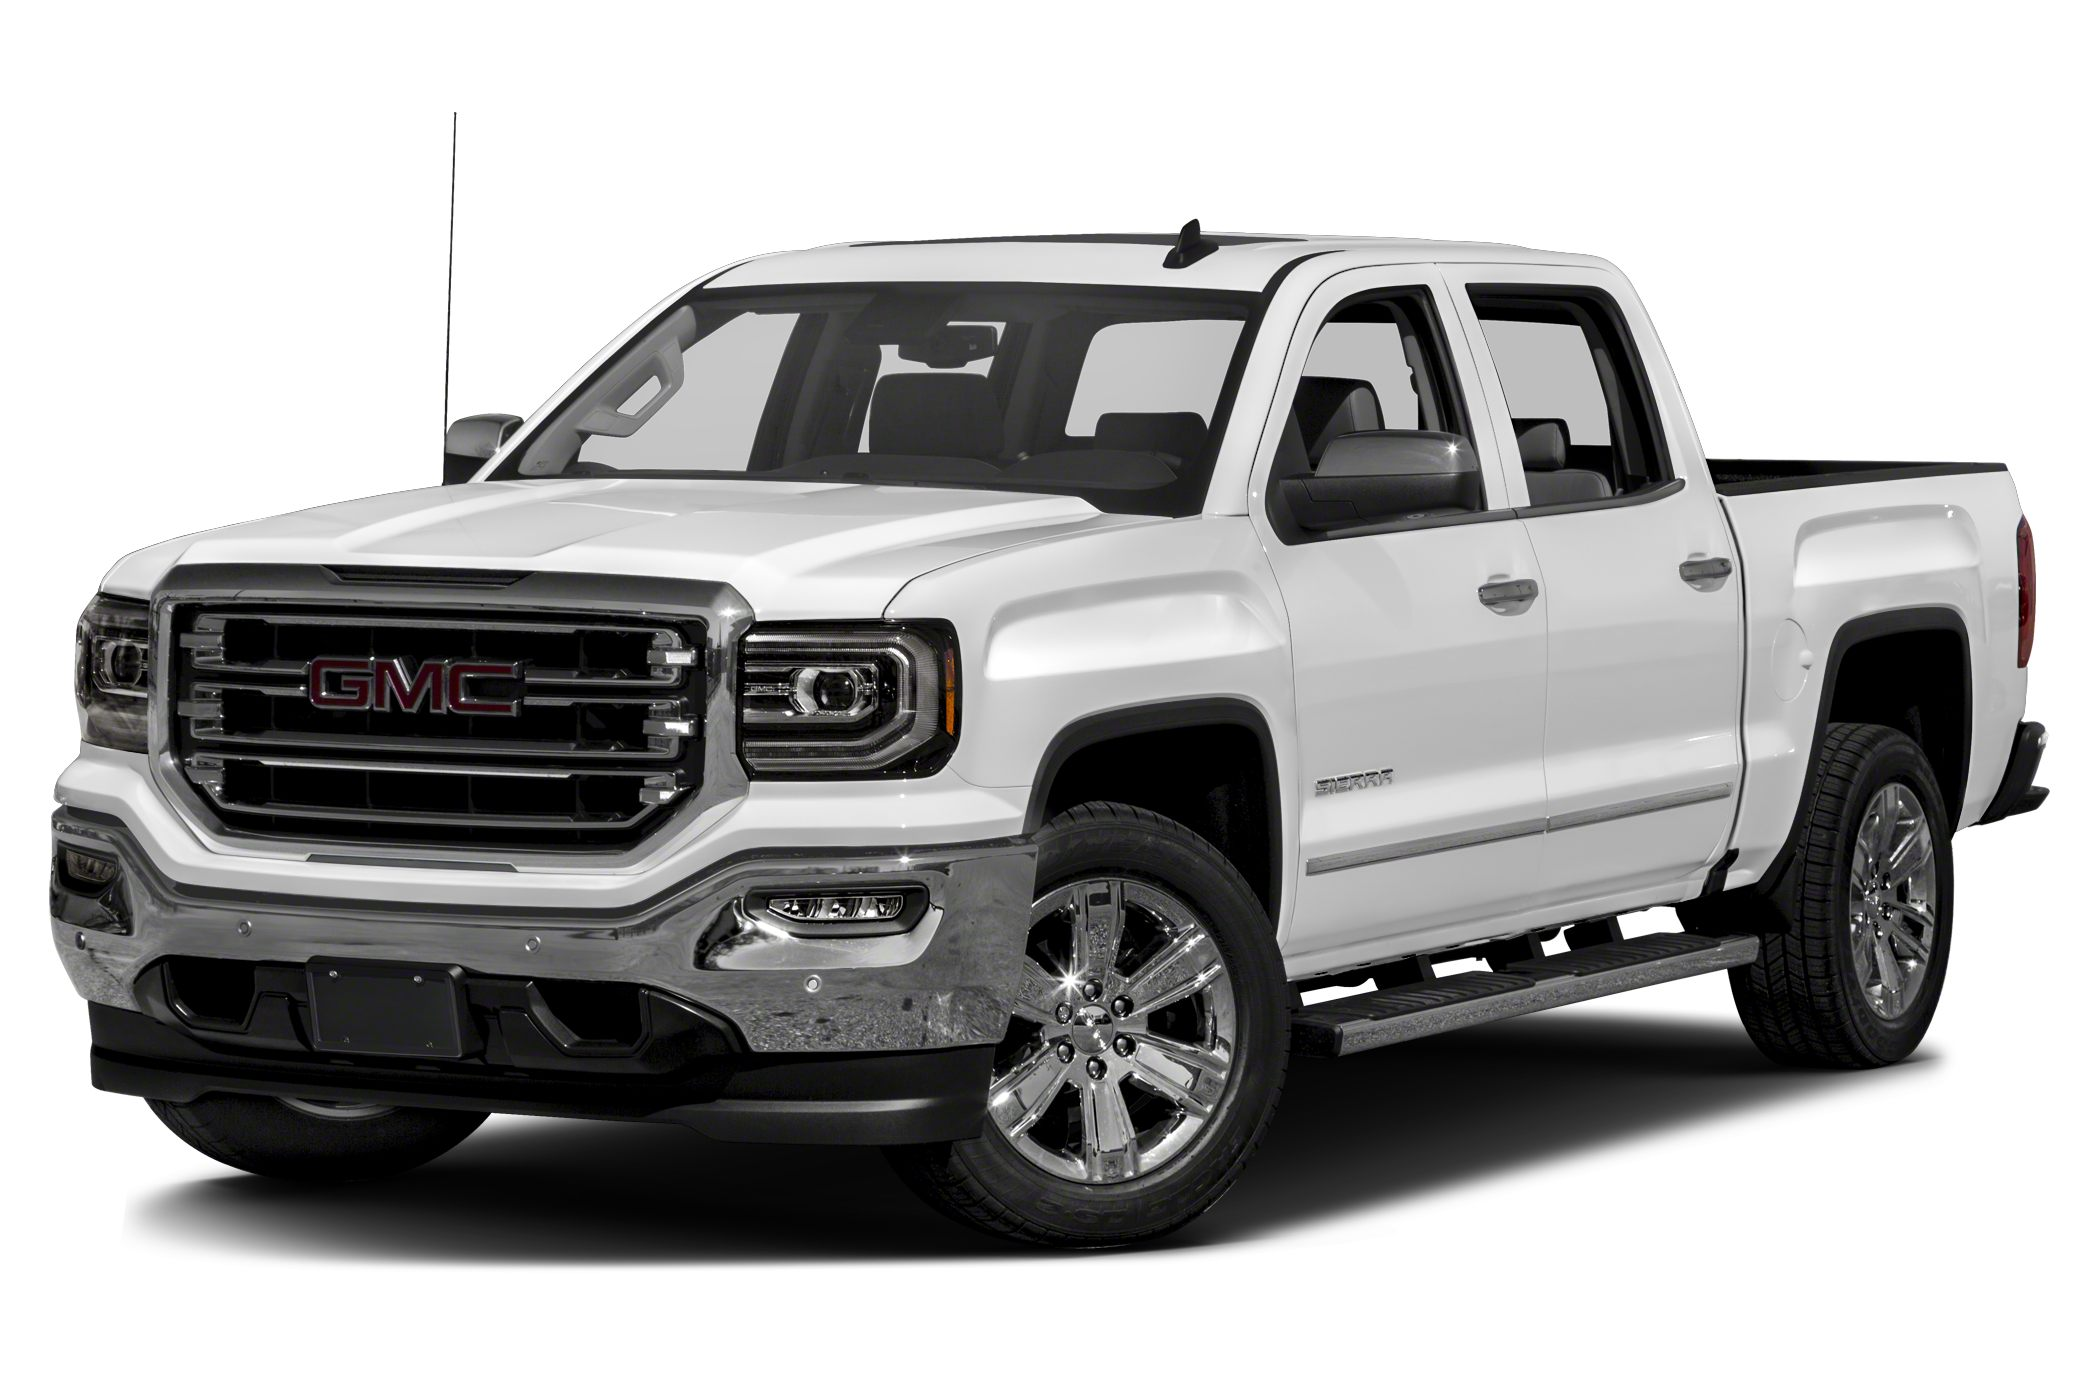 2016 GMC Sierra 1500 SLT Happiness comes first with this 2016 GMC Sierra 1500 SLT Enjoy first-rat